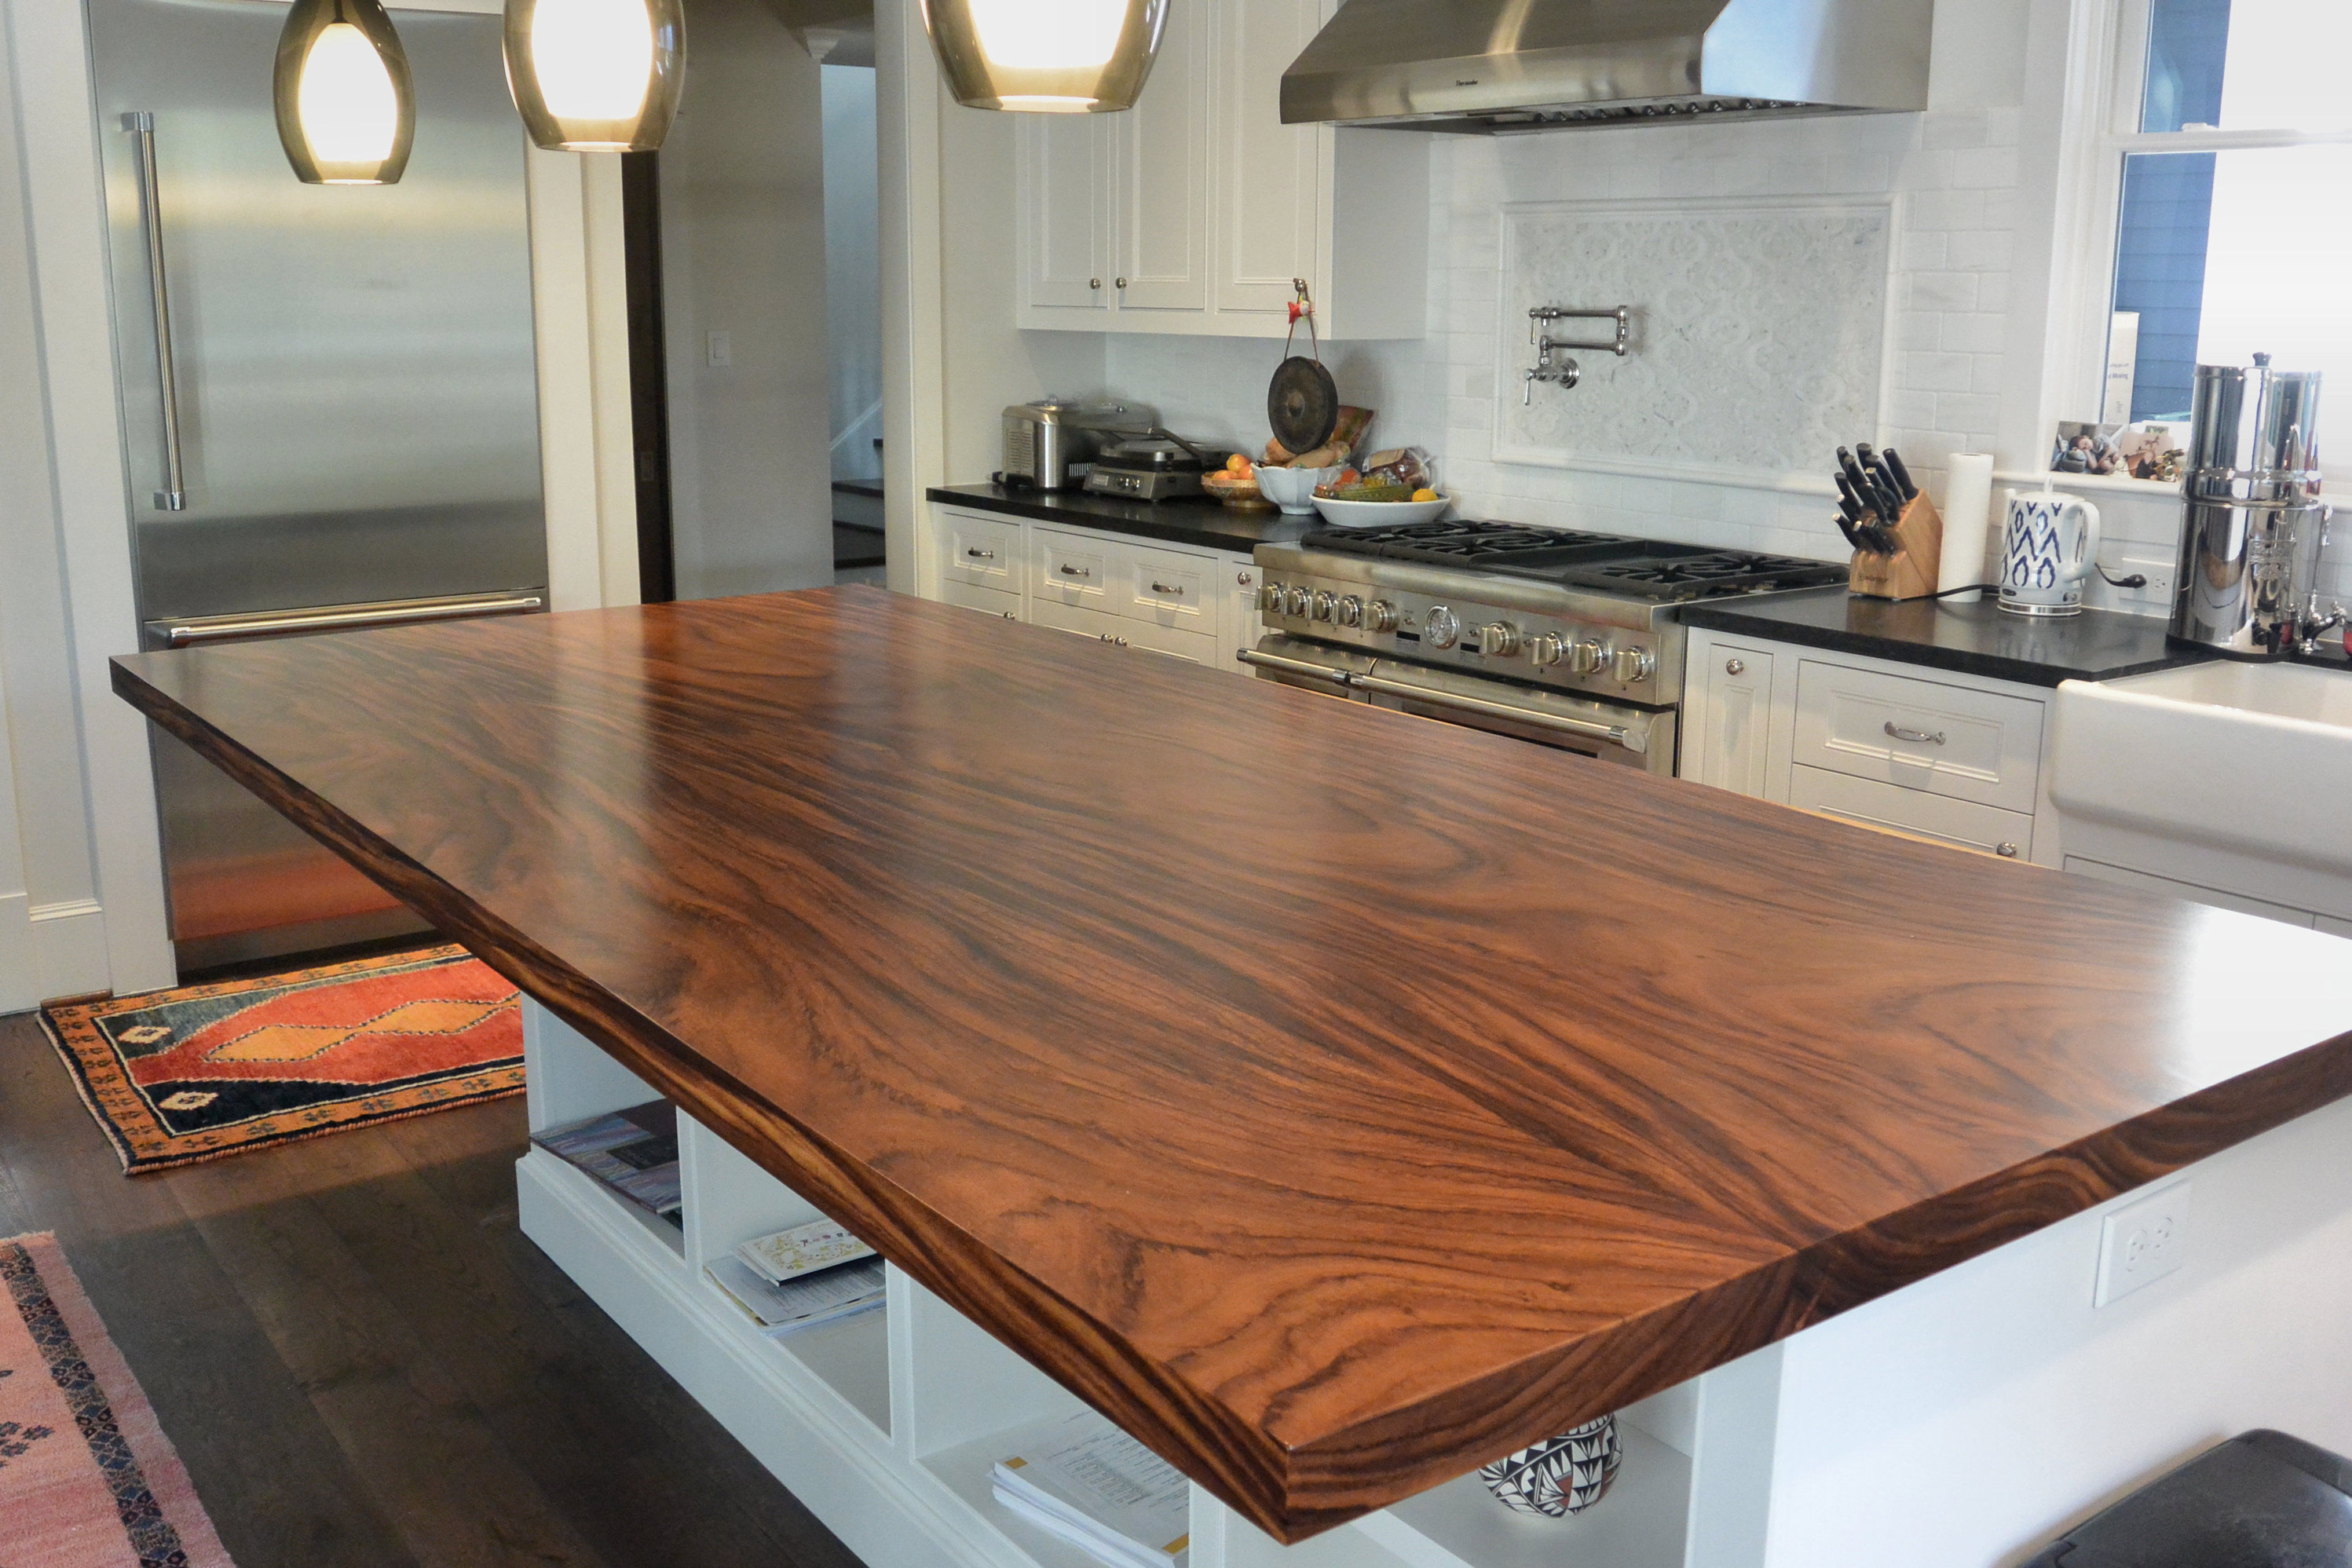 Live Edge Wood Slab Countertop Photo